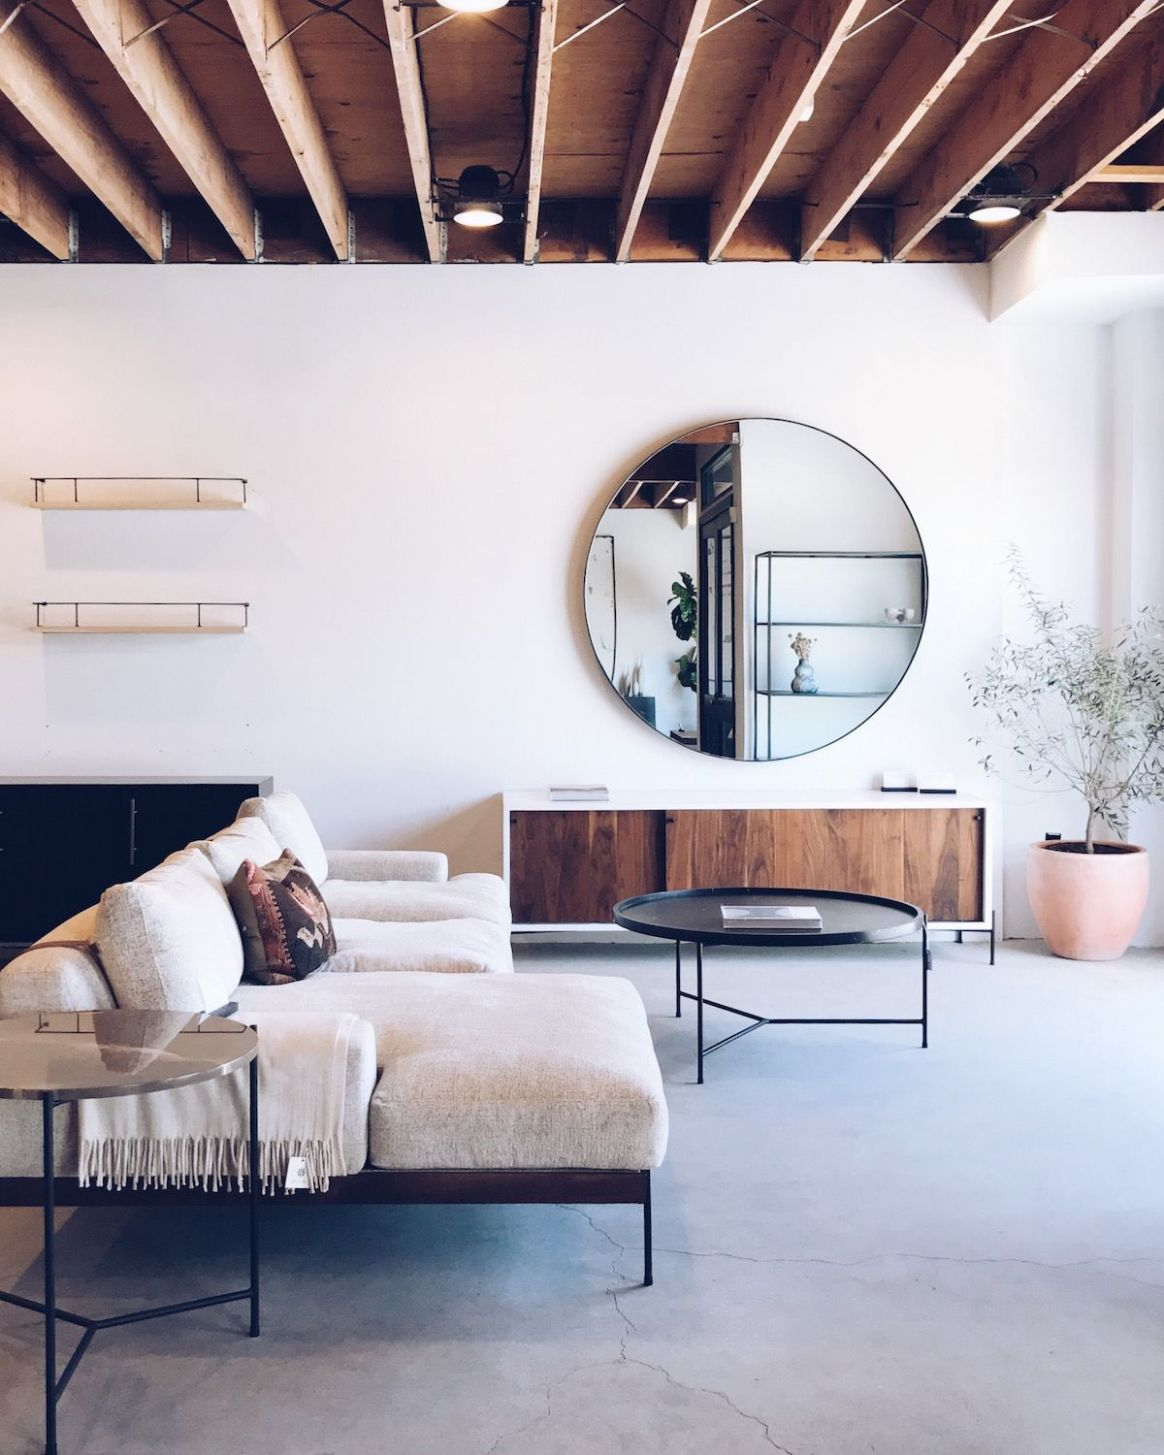 Travel Guide: 10 Hours in LA (With images) | Living room mirrors ..